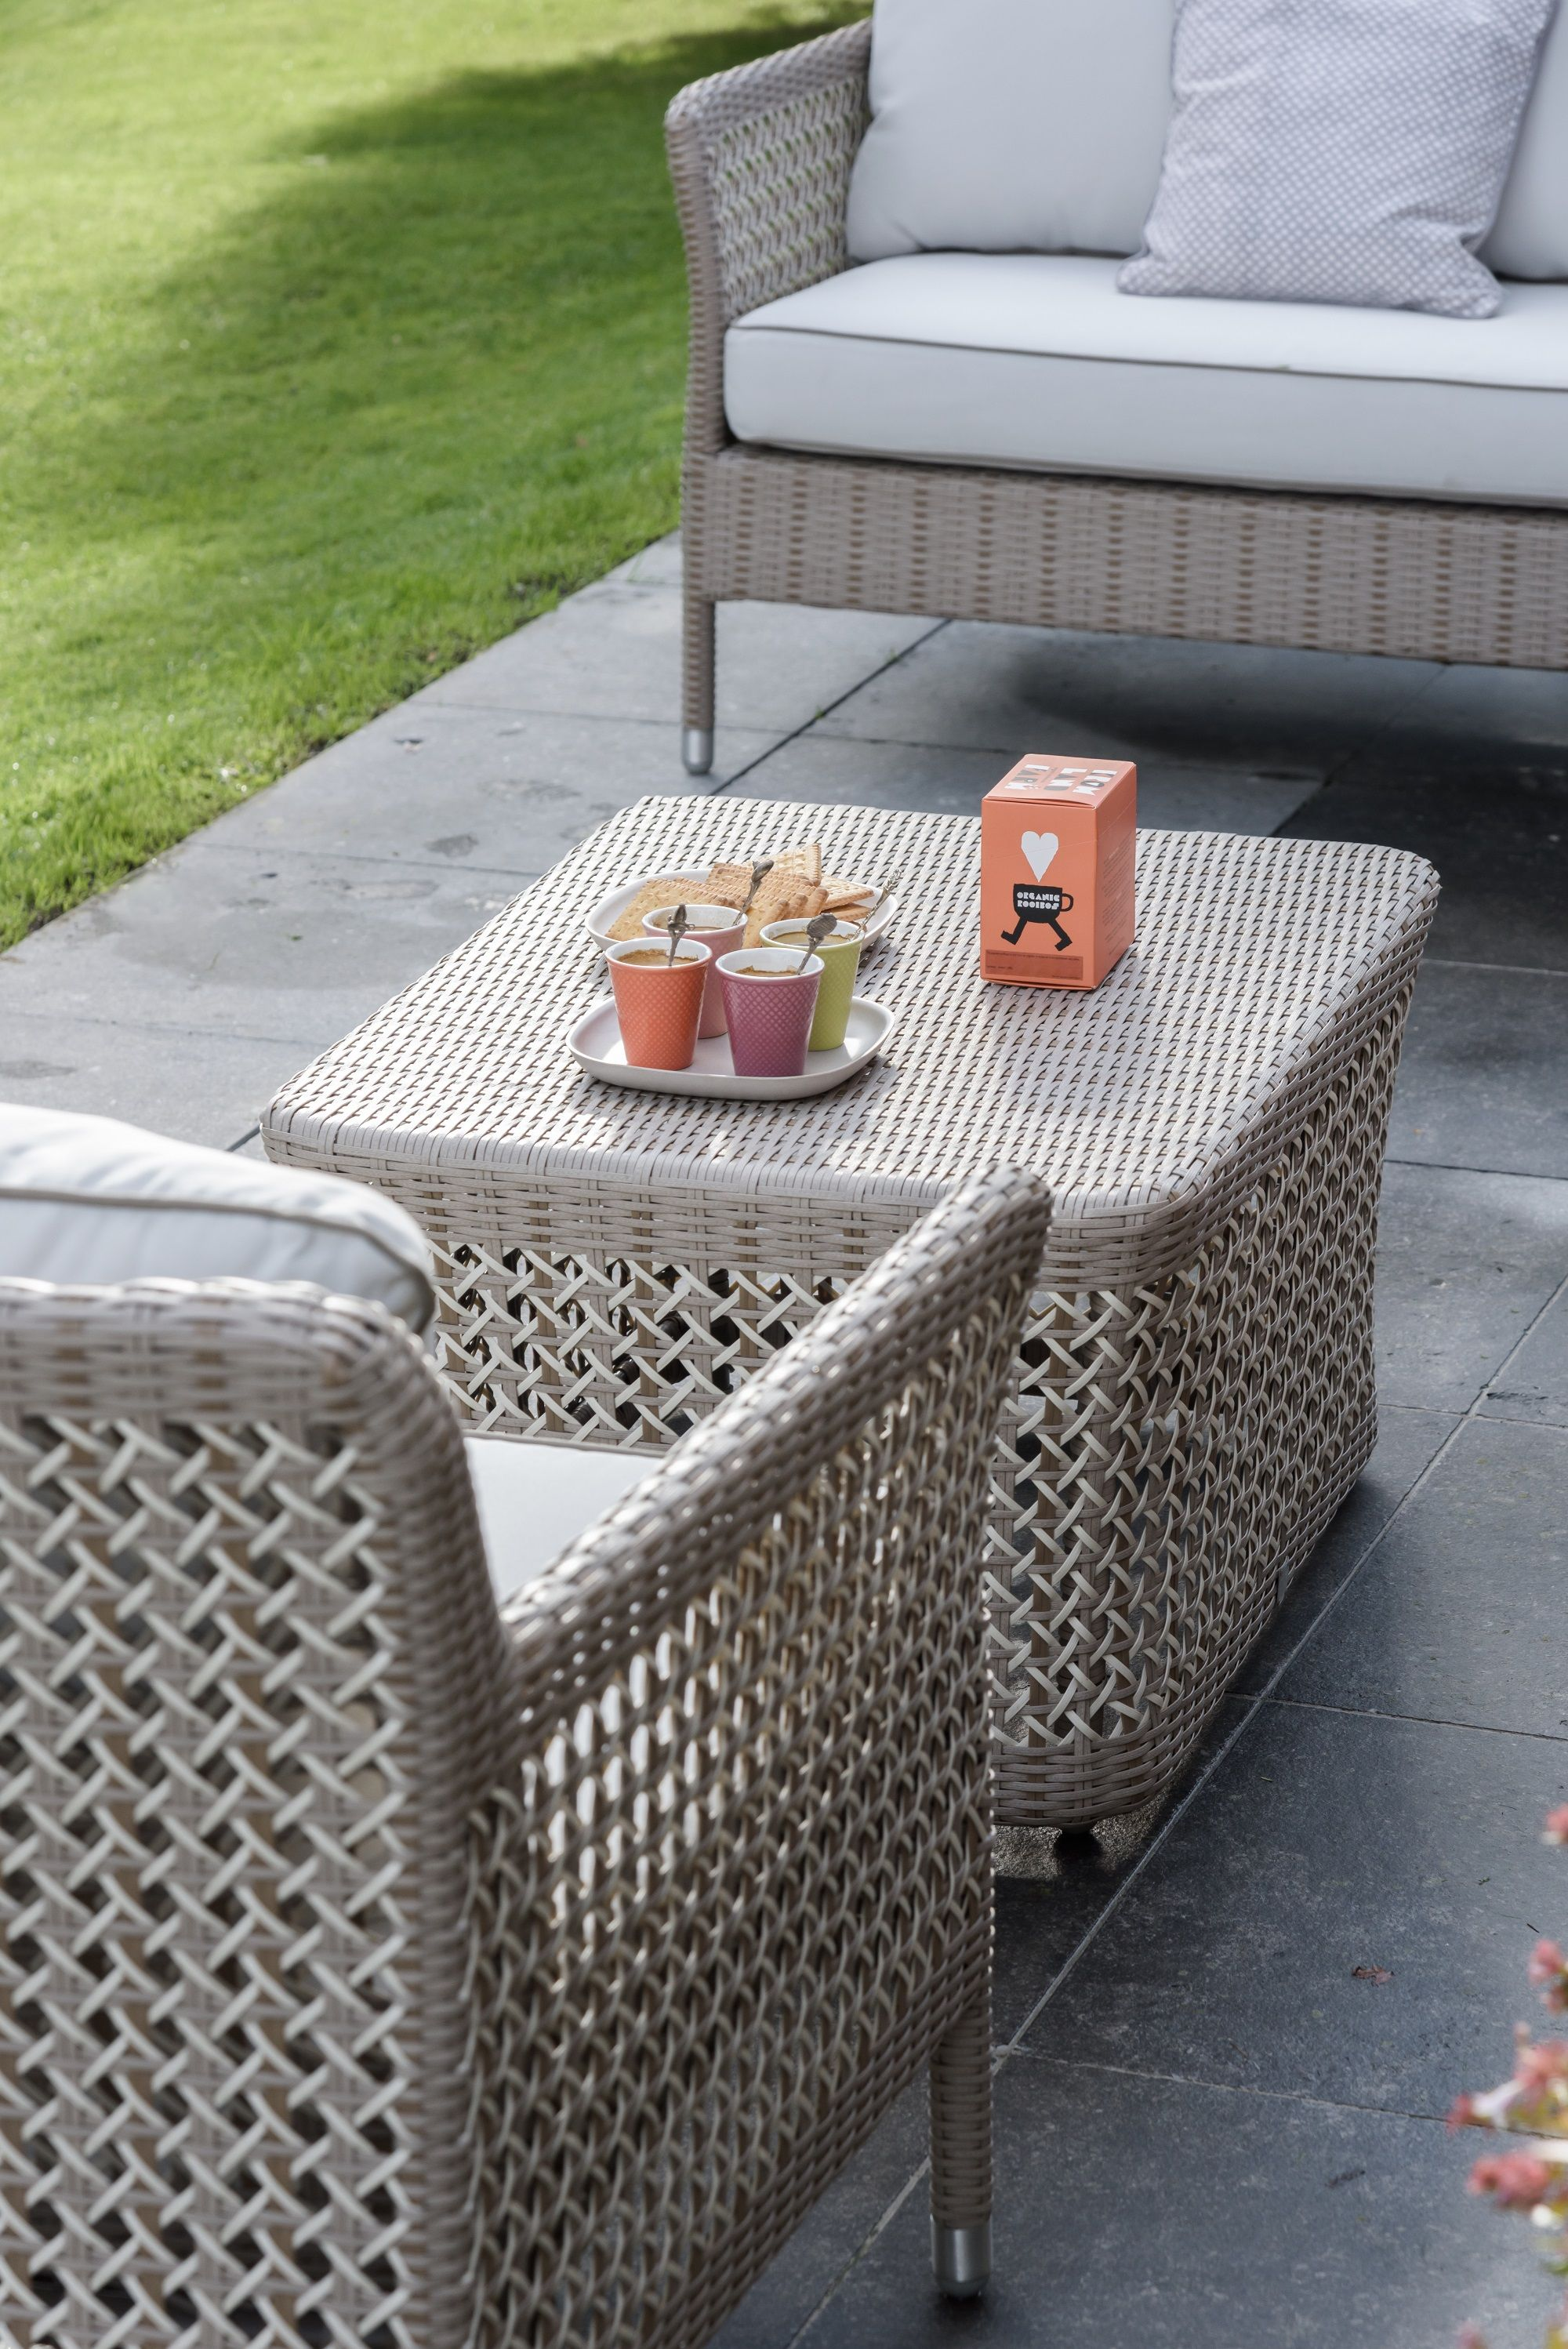 Salon De Jardin Antibes Kok Maison Outdoor Furniture Sets Outdoor Furniture Outdoor Ottoman